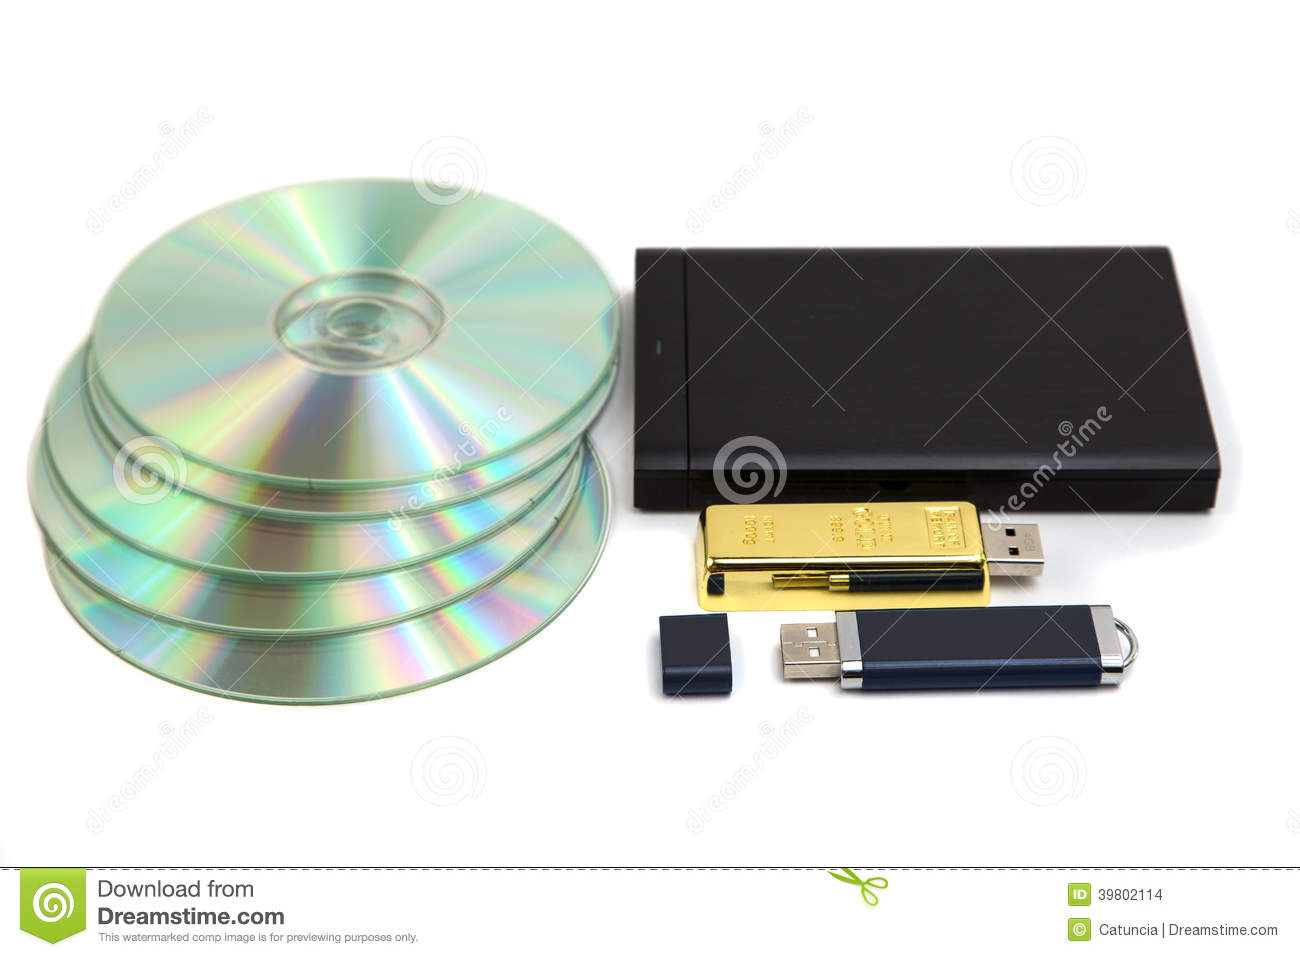 Data Storage Device Stock Photo - Image: 39802114